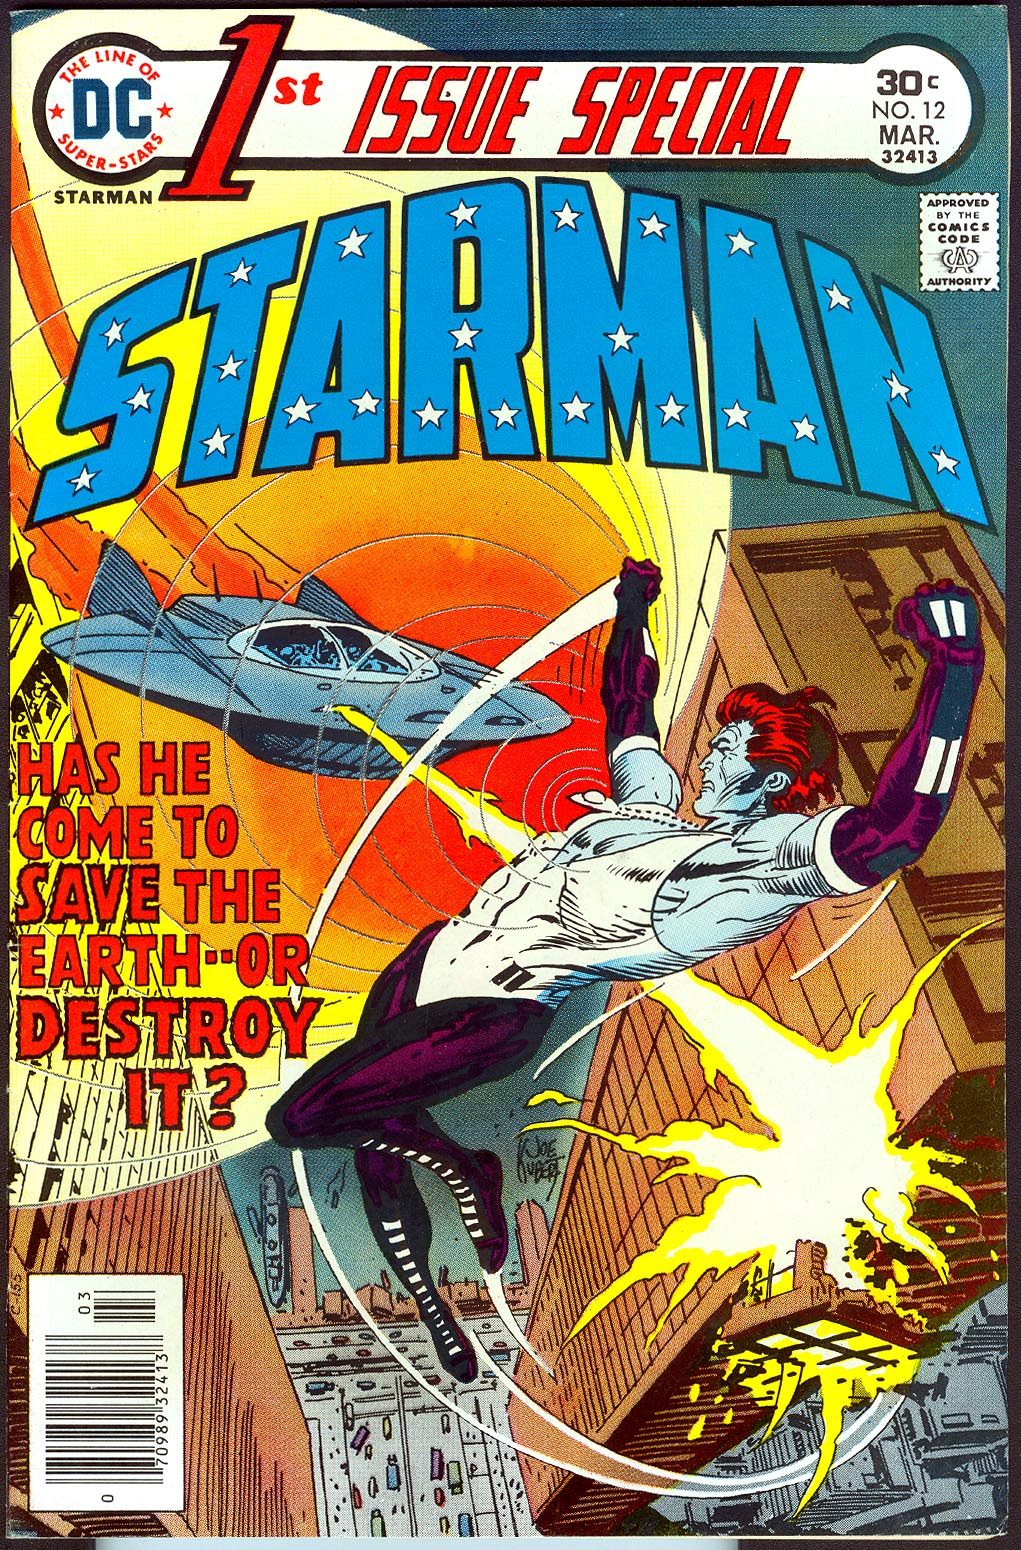 1 st Issue Special 12 (Starman) -VF